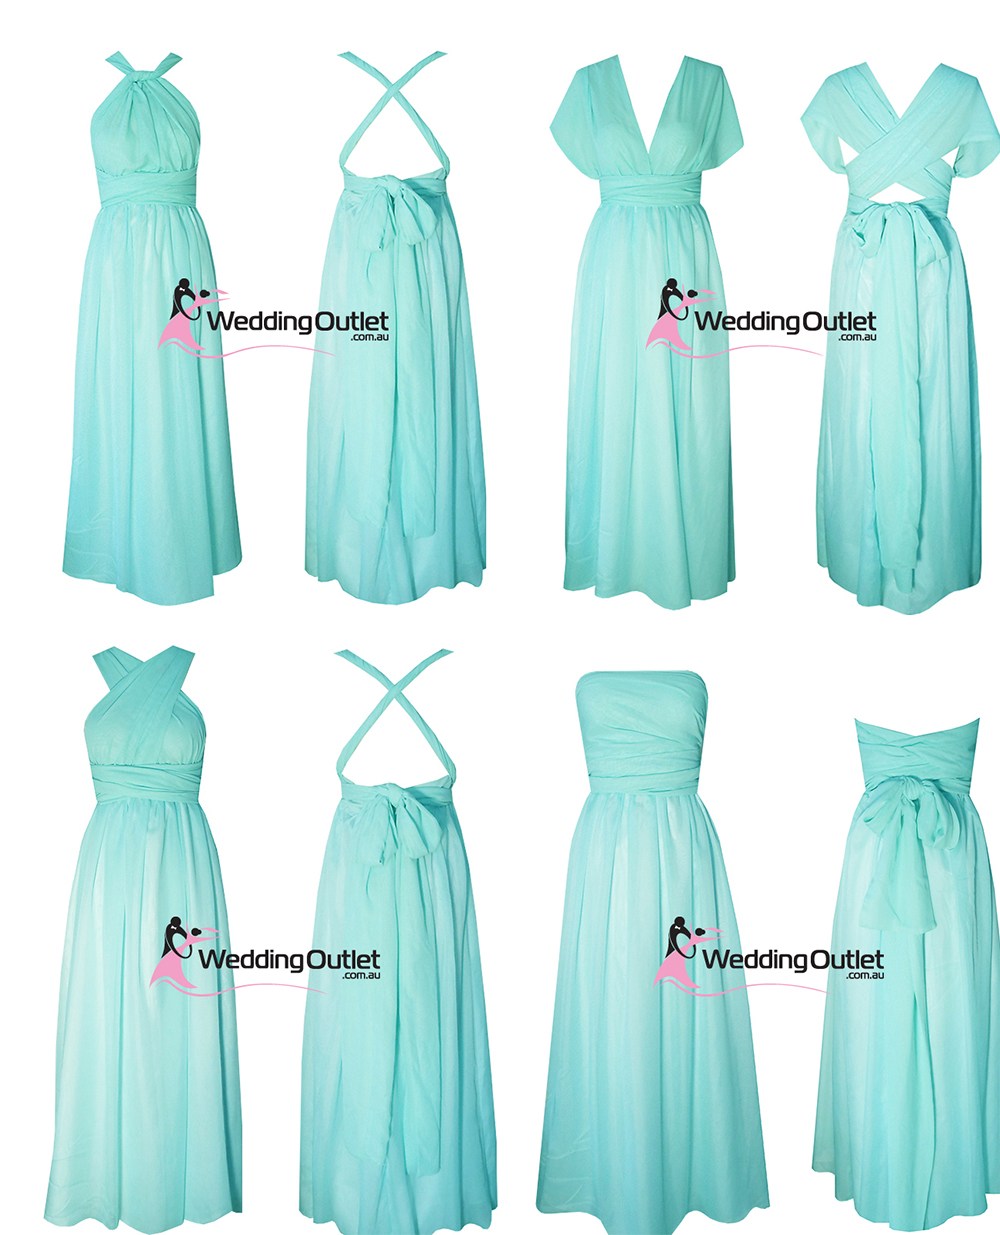 Fine wrap dress bridesmaid gallery wedding ideas memiocall eight way twist and wrap dress style u101 weddingoutlet ombrellifo Gallery